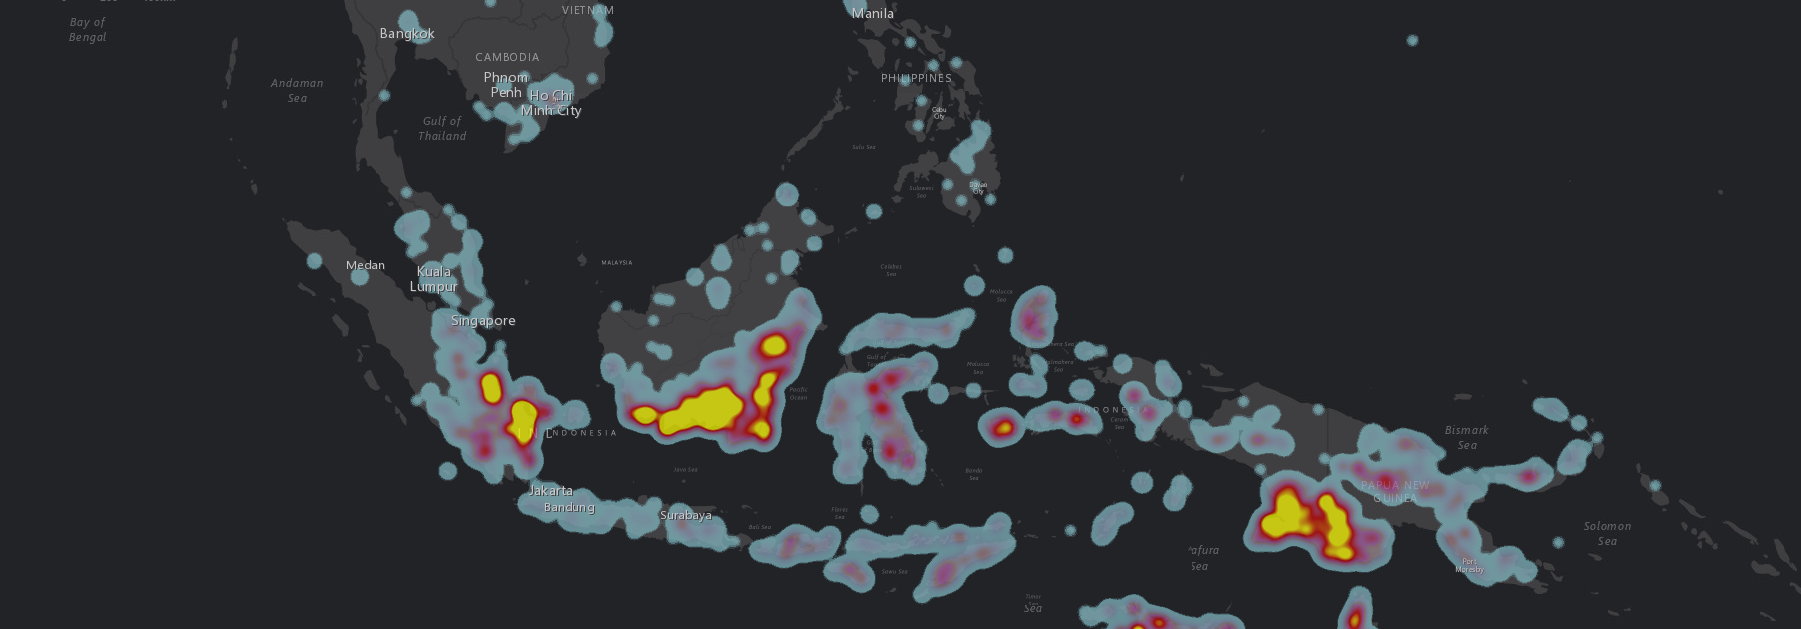 heatdensity map